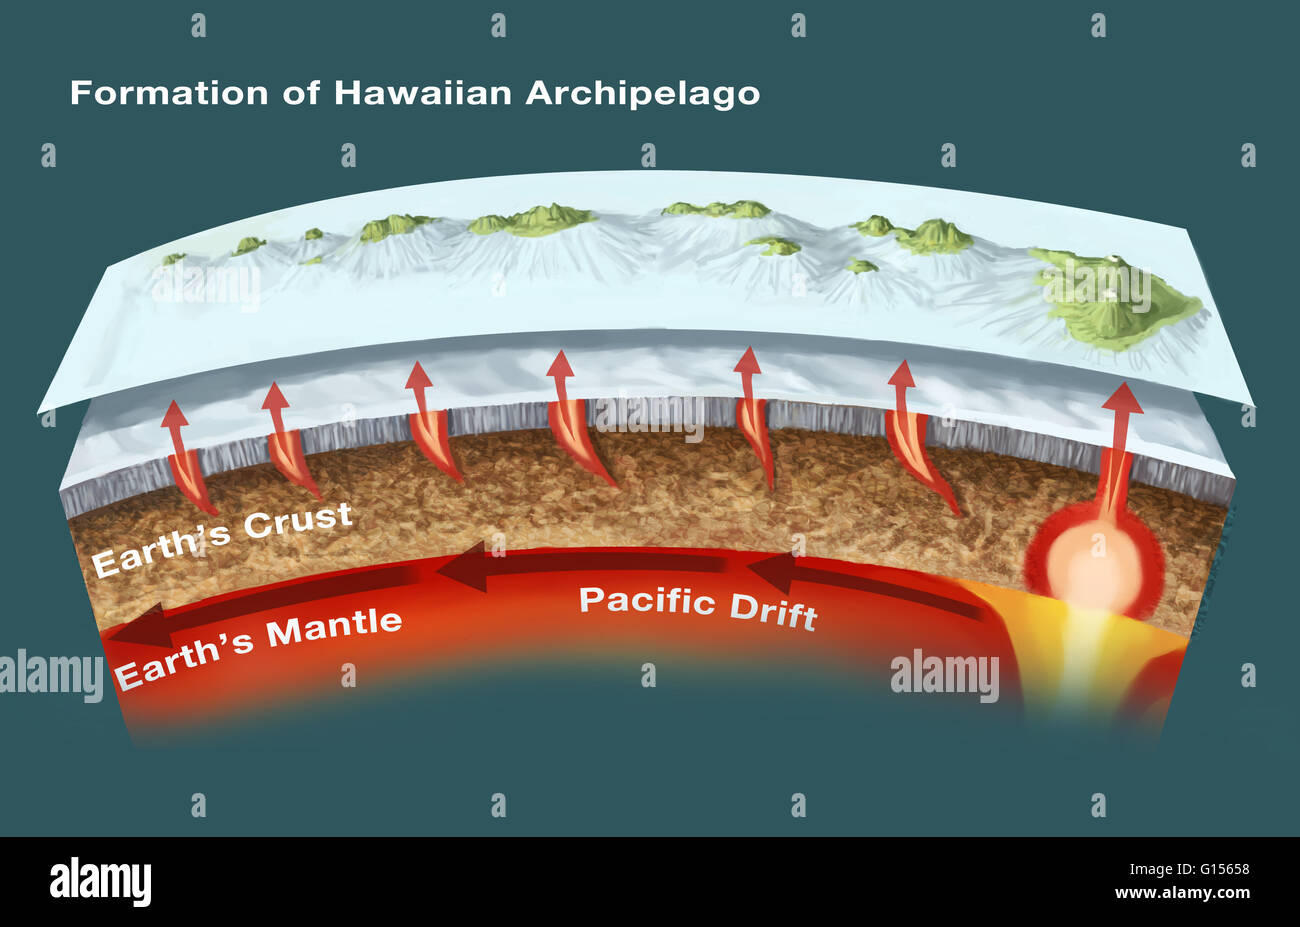 The Geology Of Hawaiian Islands This Illustration Shows Archipelago And Underwater Topography These Volcanic